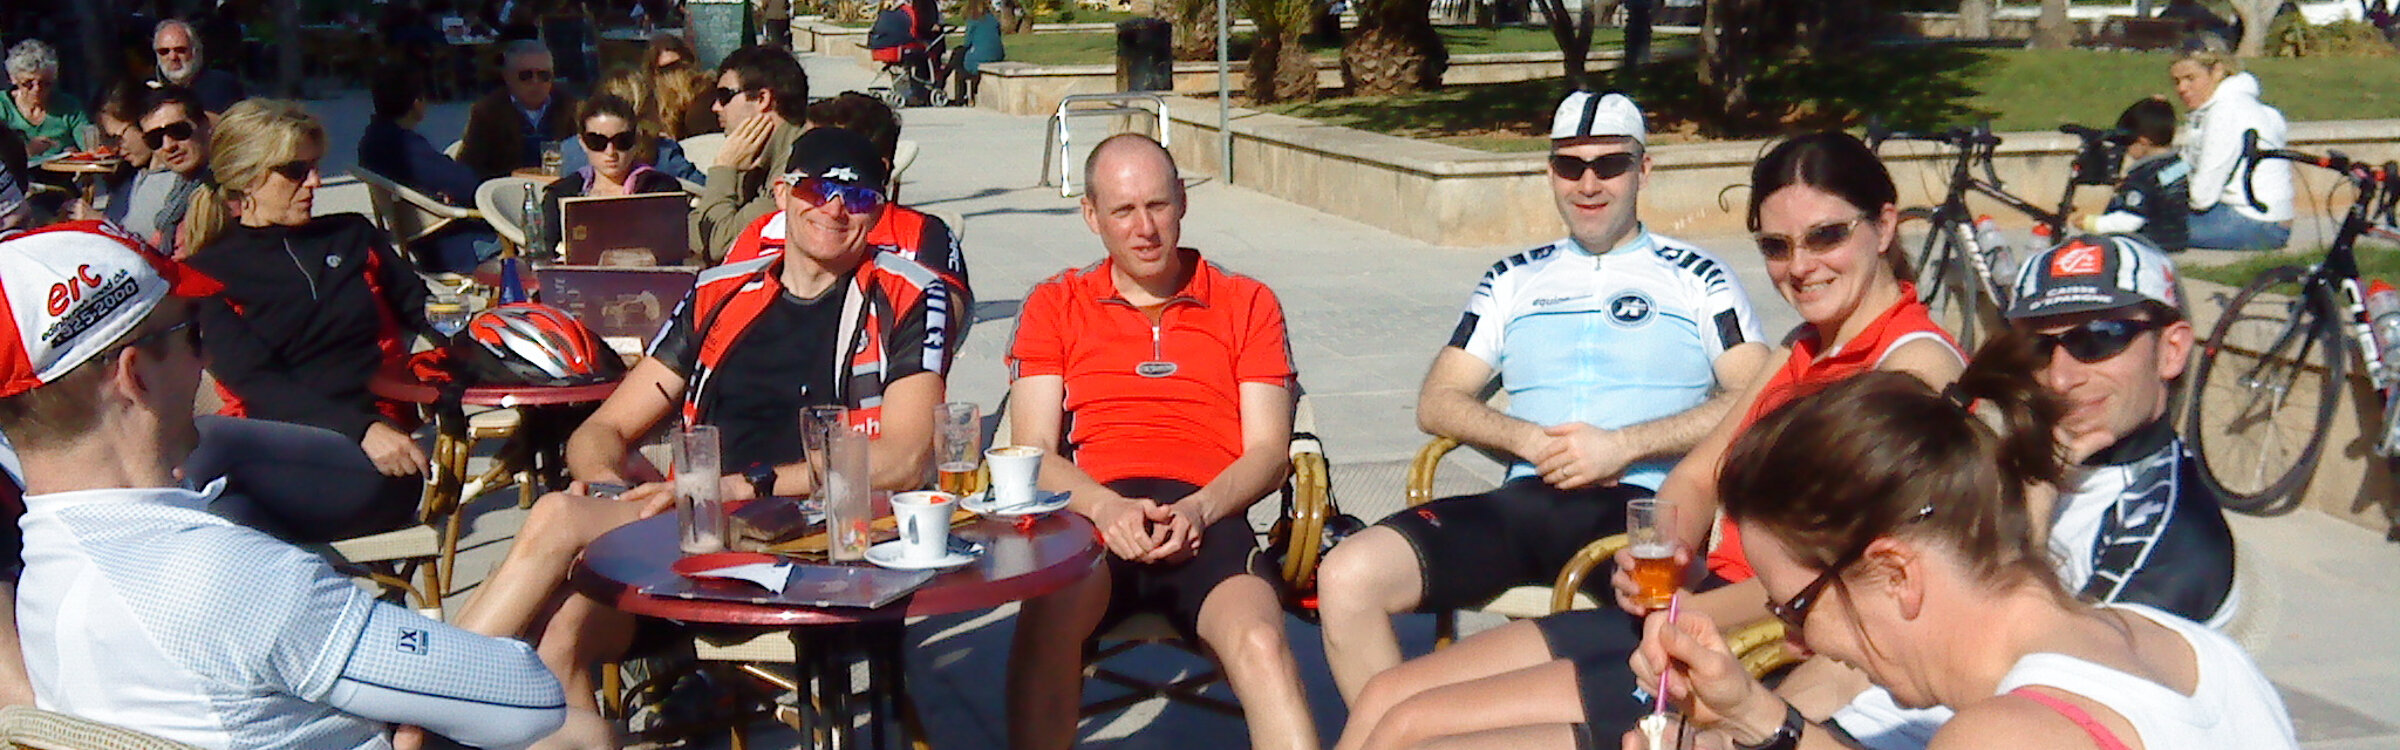 Mallorca training camp with Edinburgh Road Club - training camps are a common way to over do it and get too tired but with careful planning and recovery, you can get a real boost in fitness